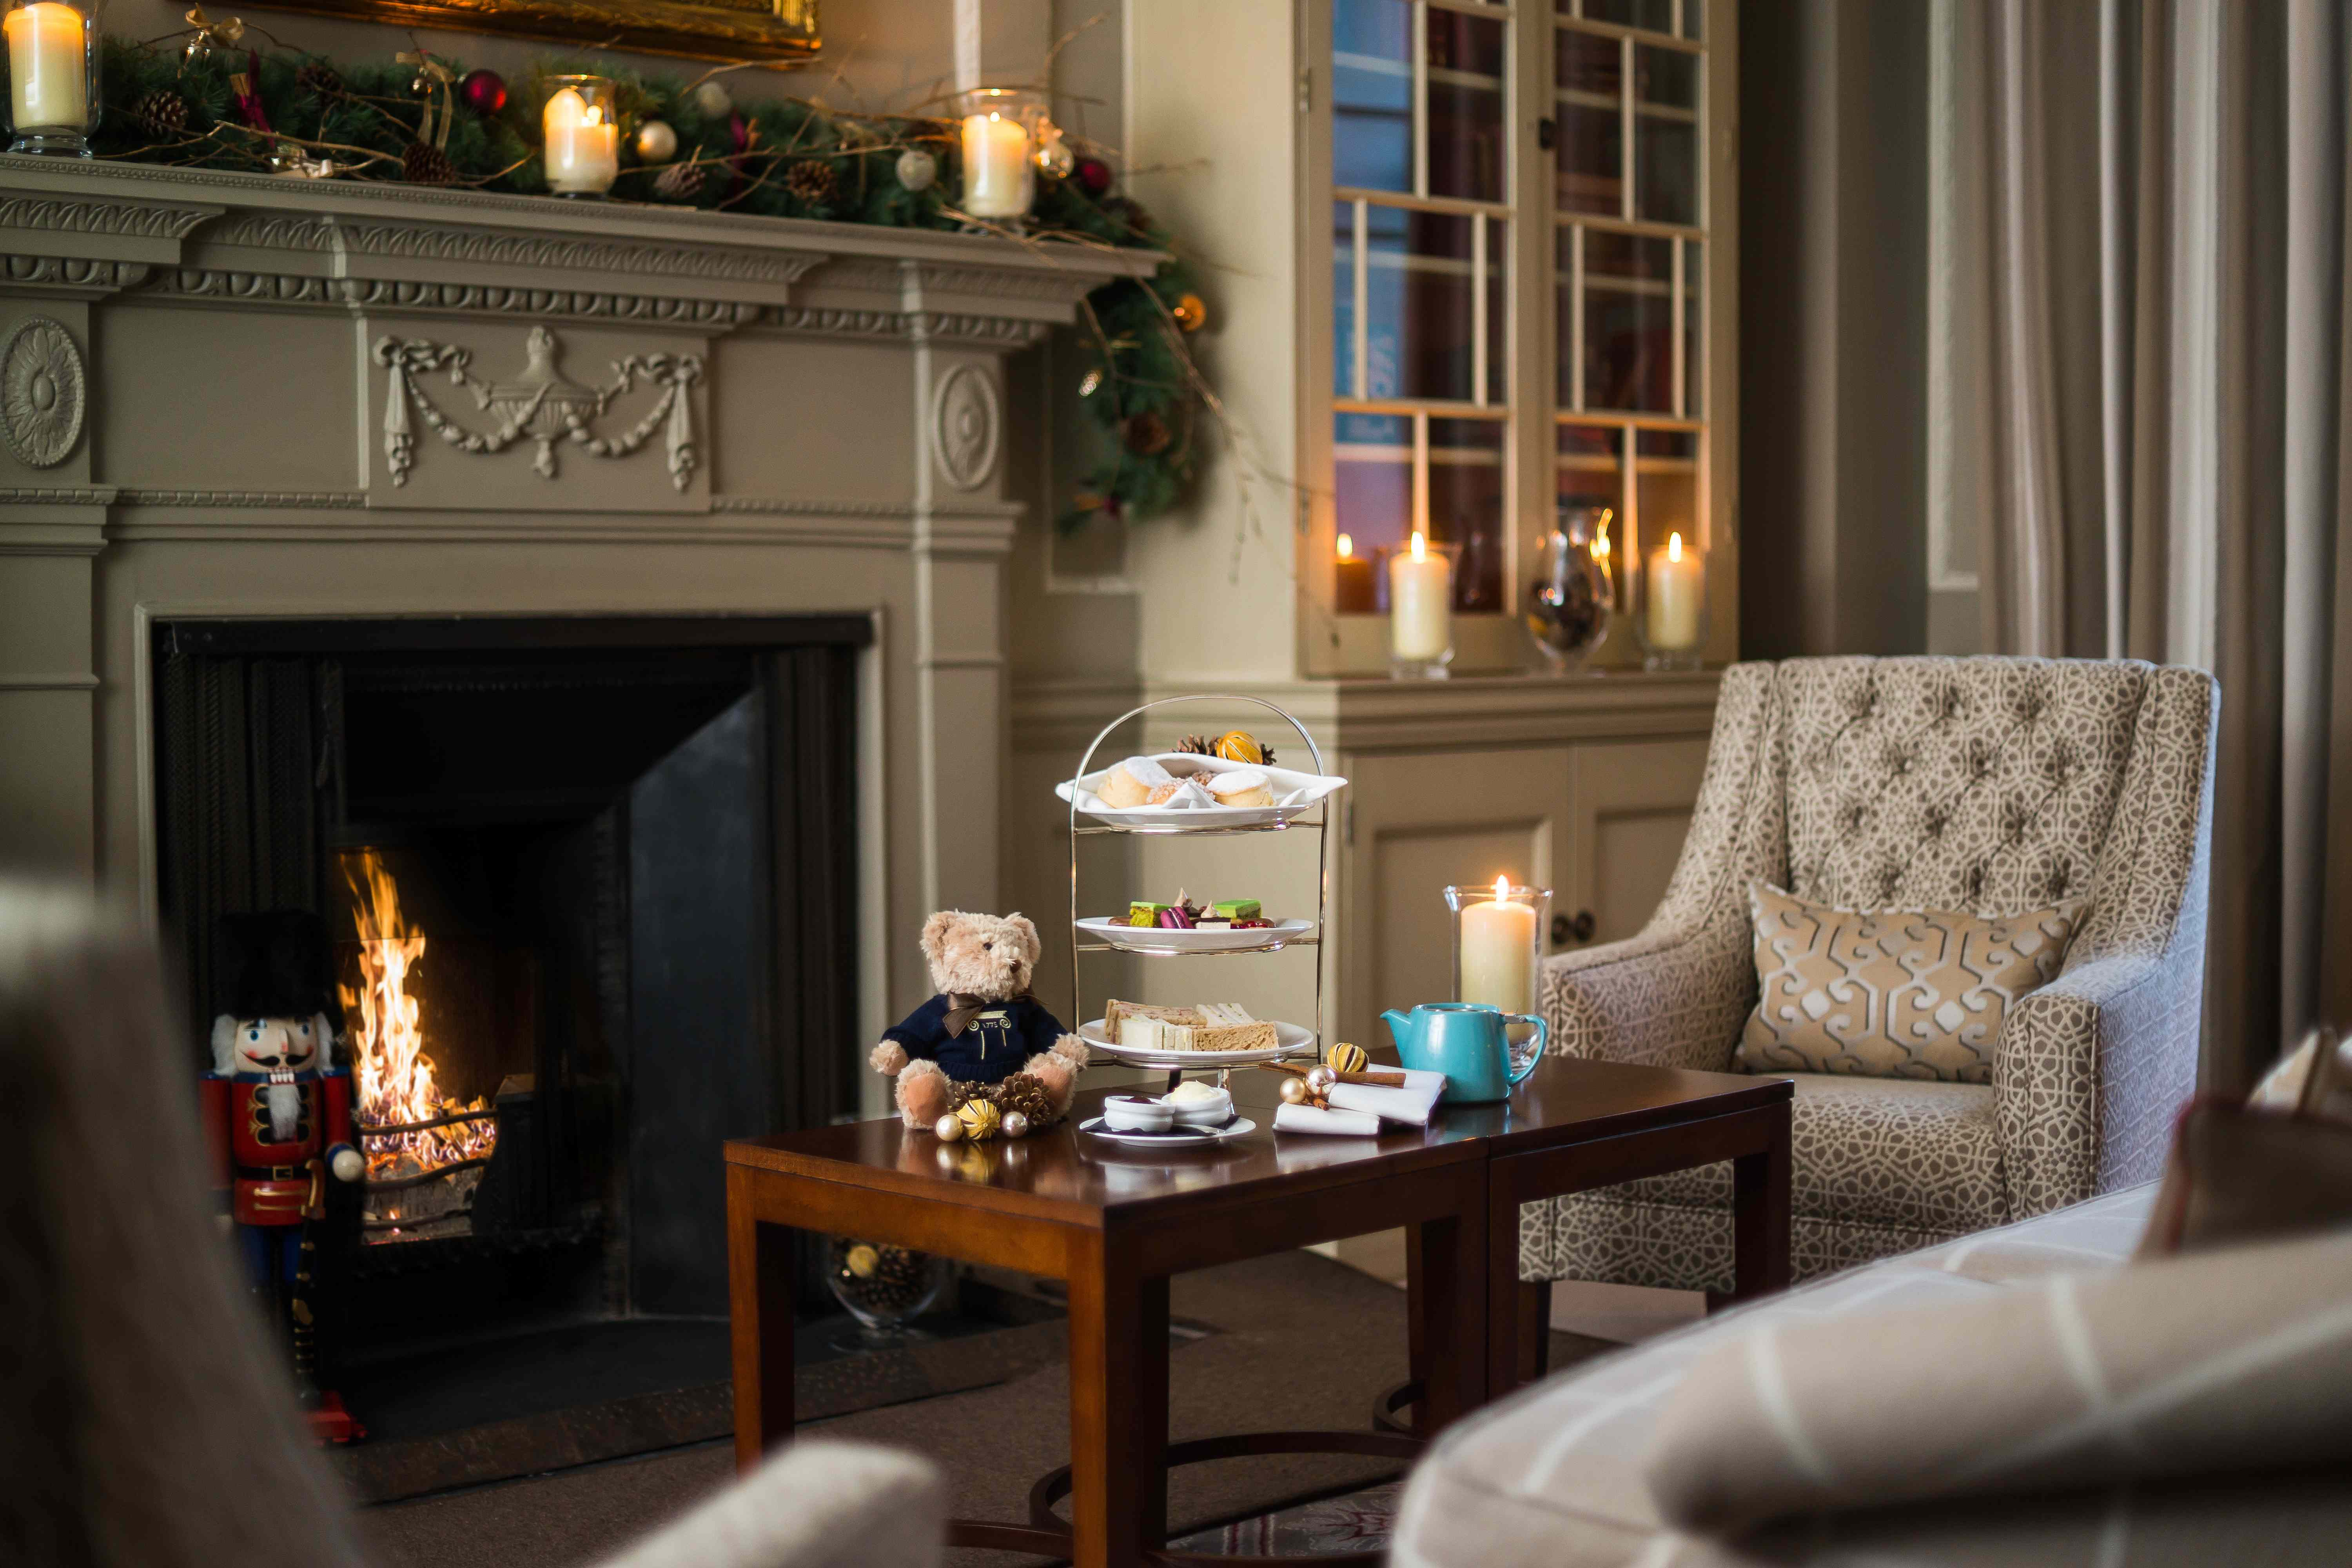 Afternoon Tea in Library at Royal Crescent Hotel, Bath